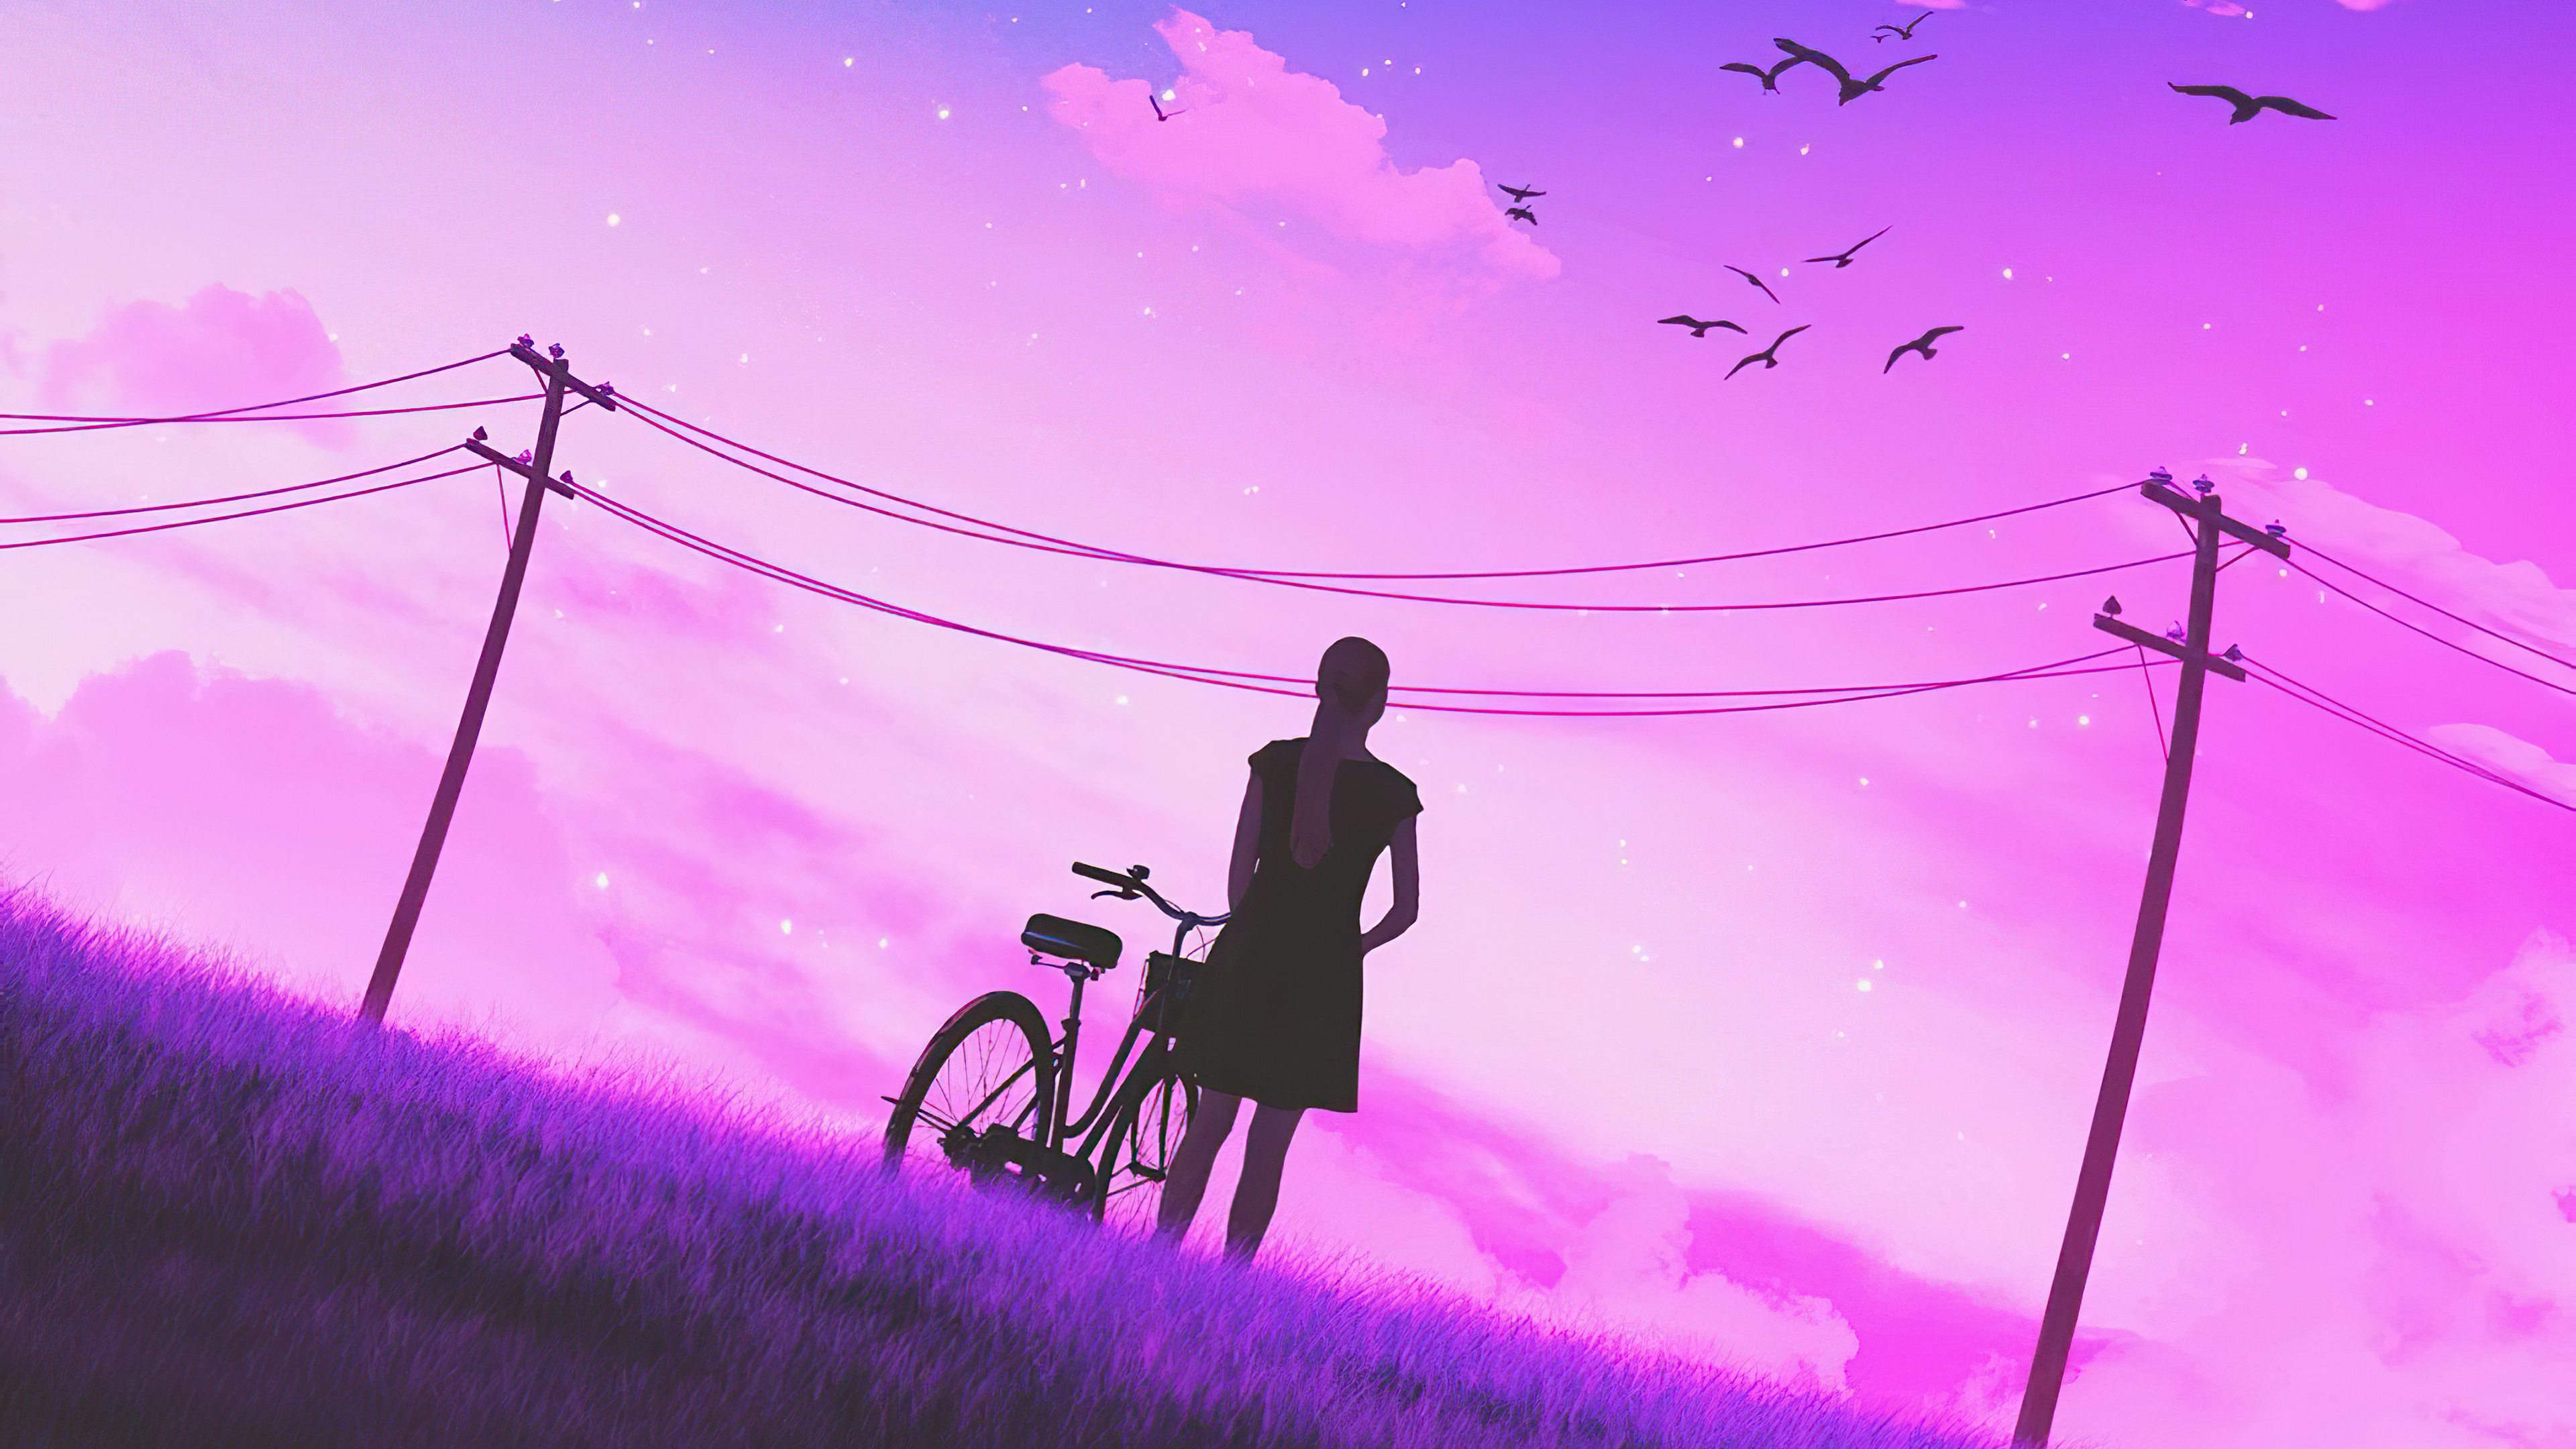 Girl Bicycle Vaporwave Art 4k Hd Artist 4k Wallpapers Images Backgrounds Photos And Pictures